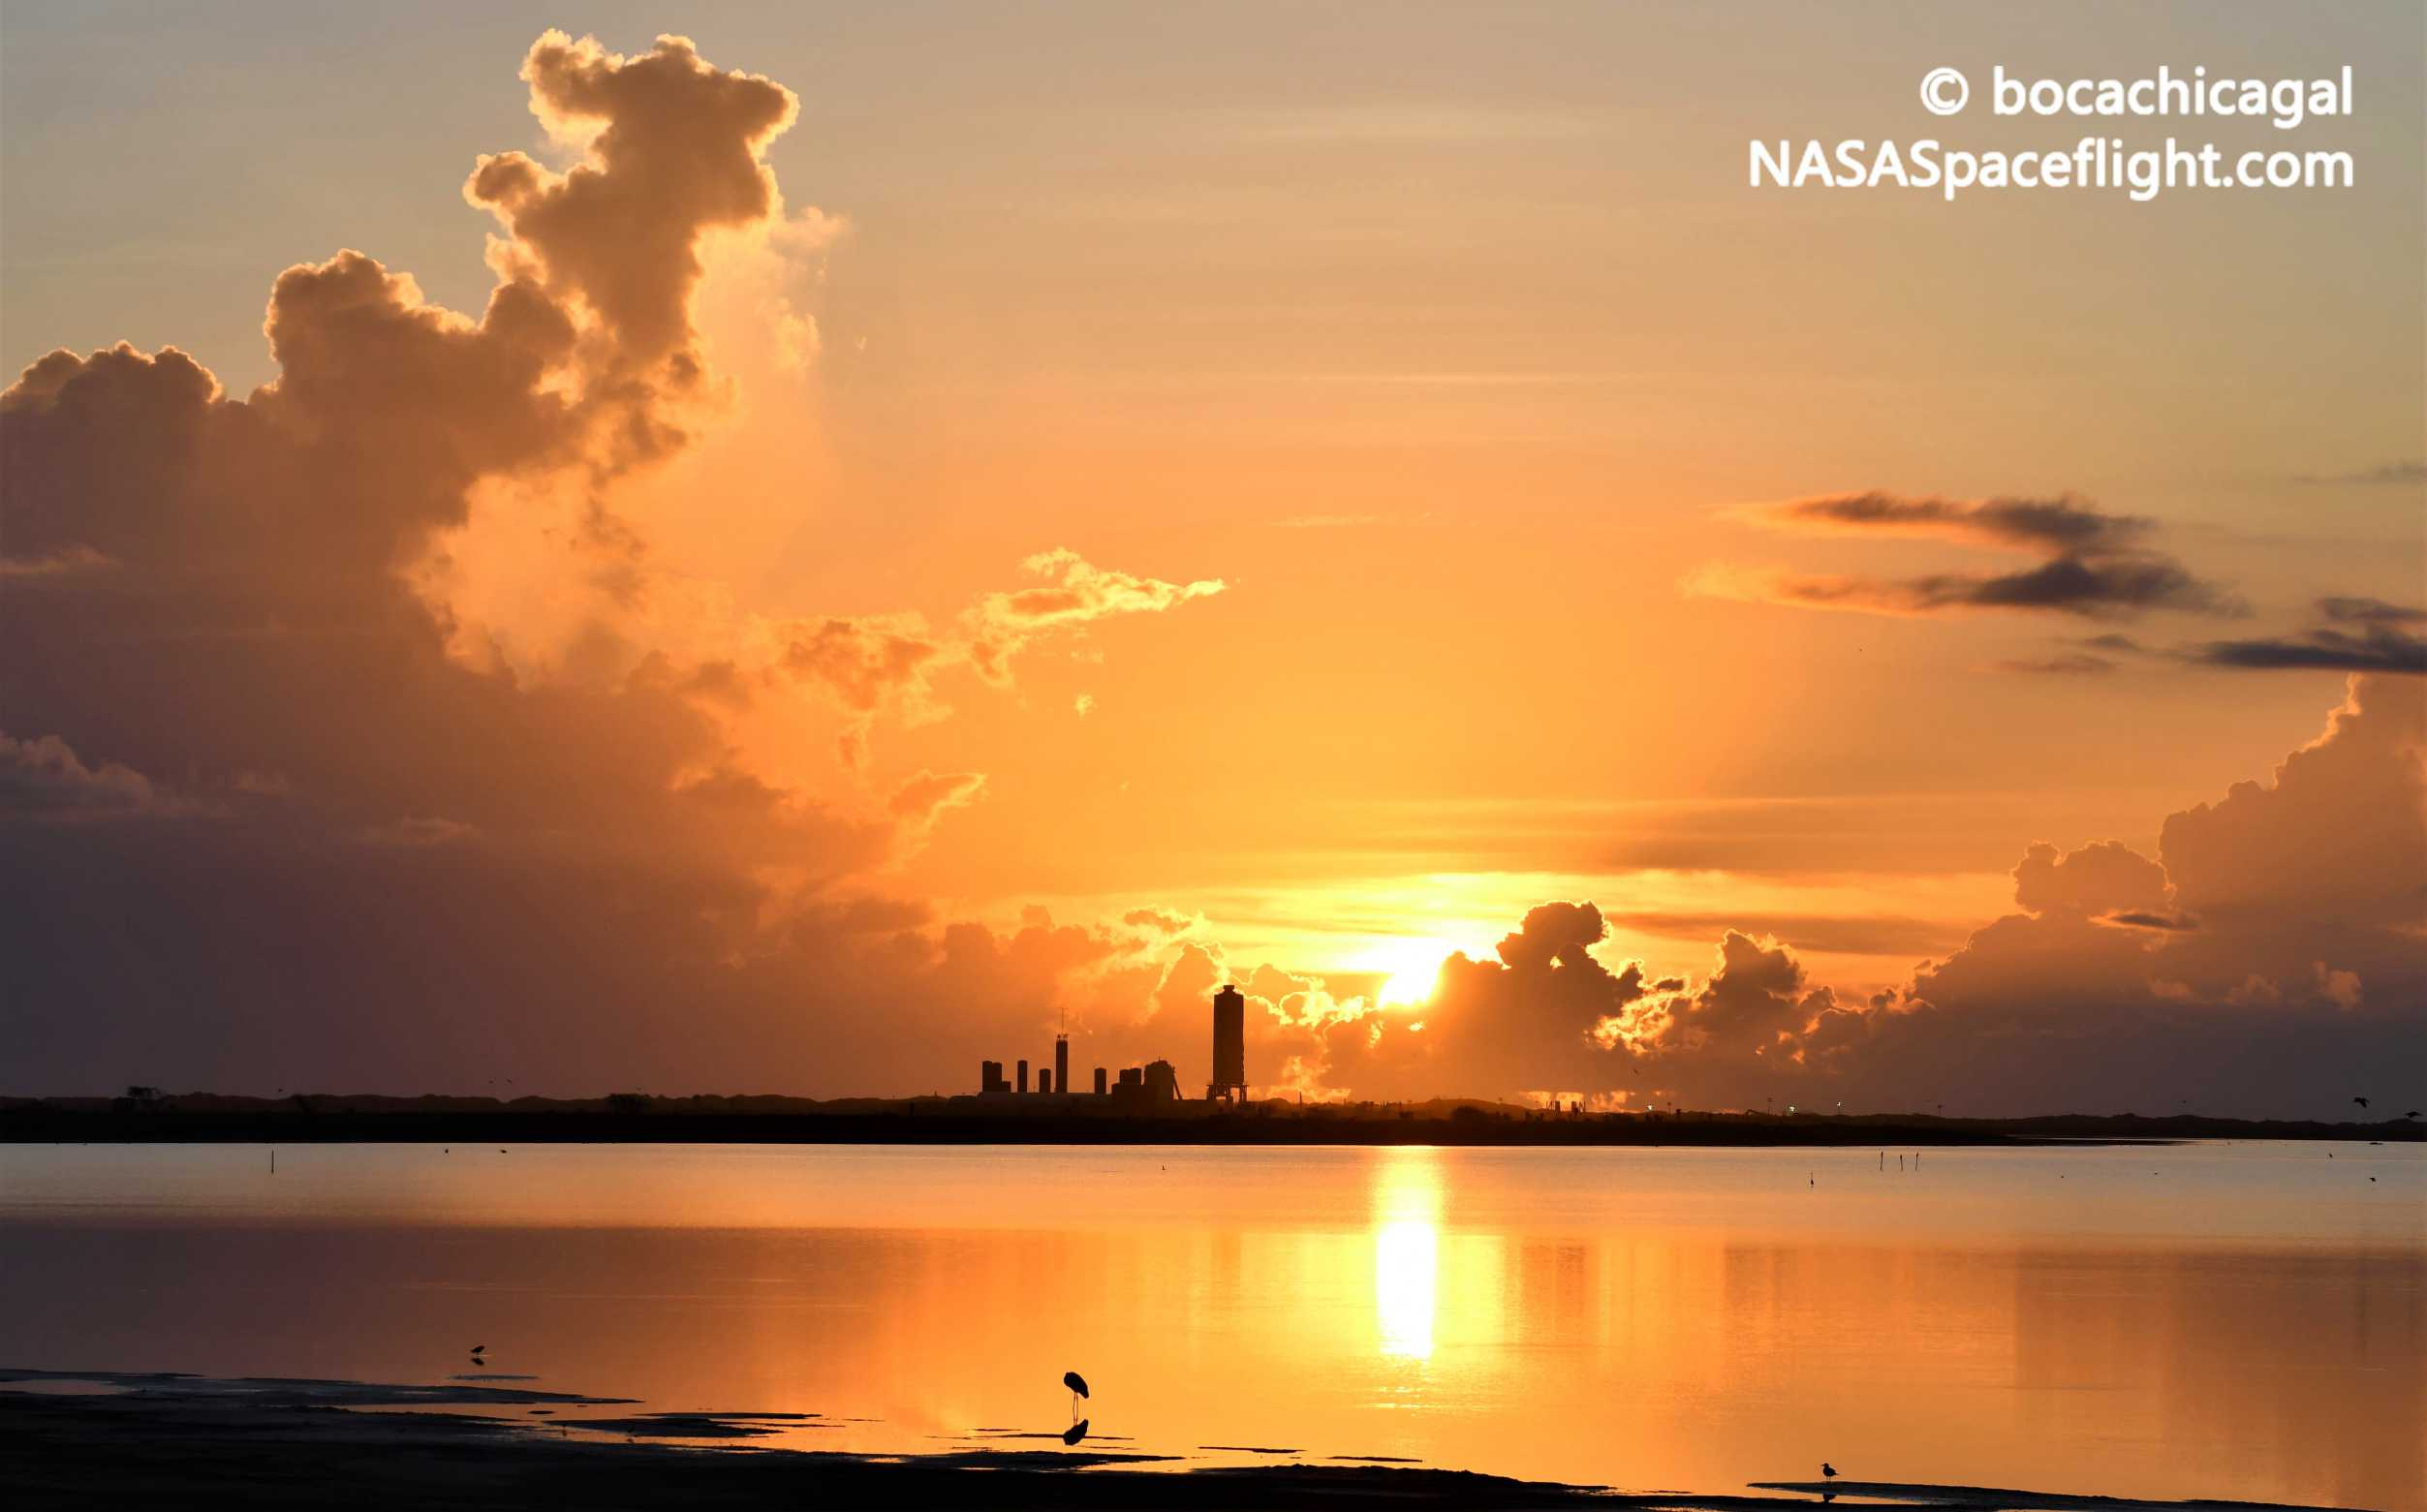 Starship Boca Chica 072220 (NASASpaceflight – bocachicagal) SN5 pad sunrise 1 crop (c)